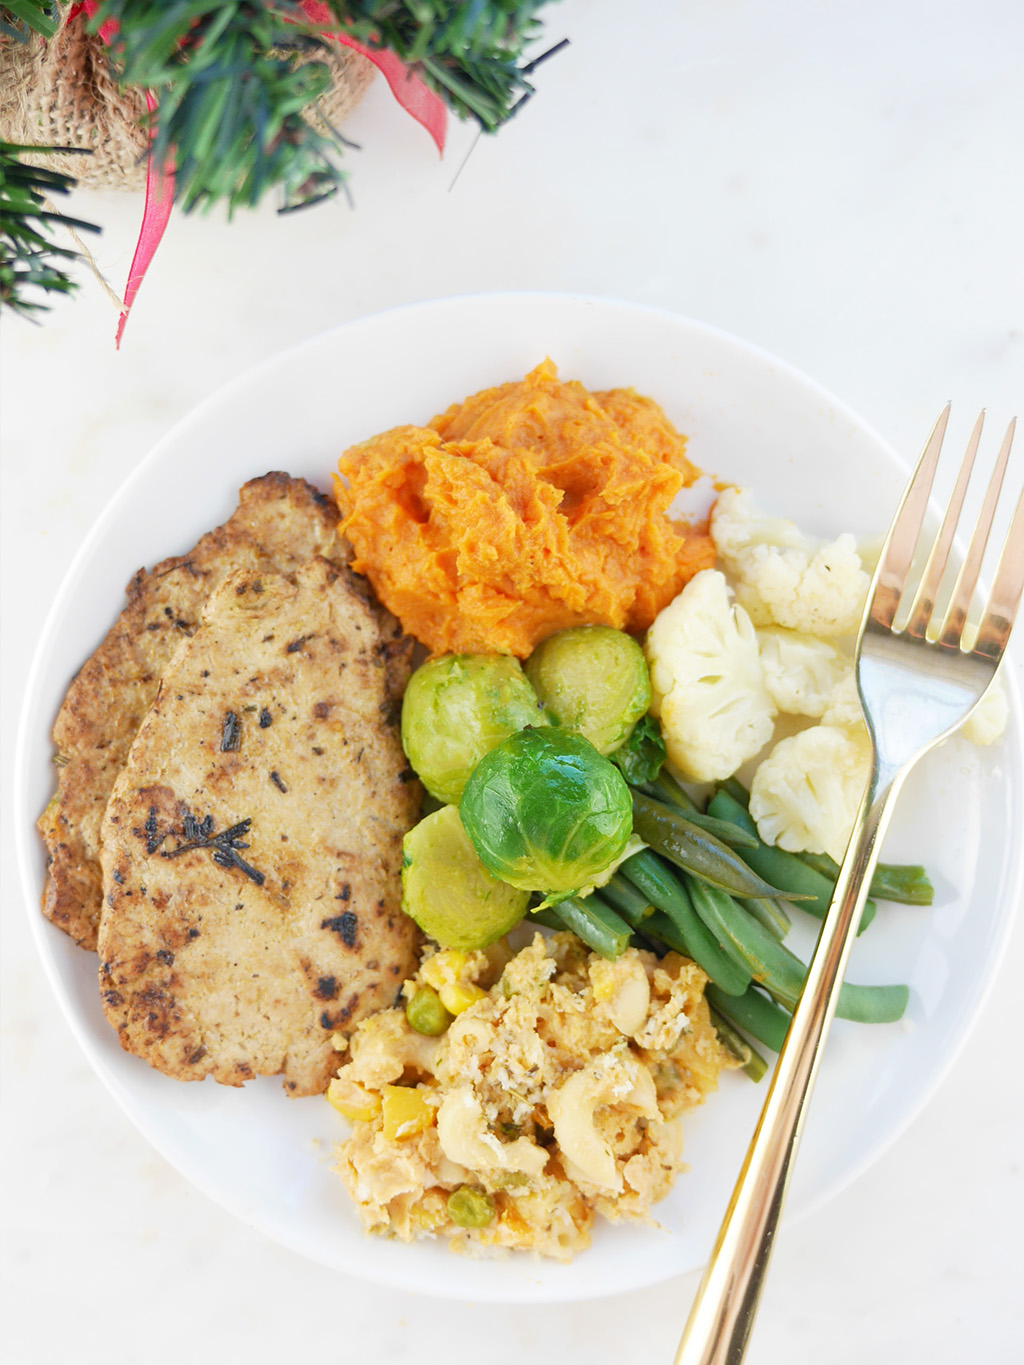 Veestro Holiday Meals